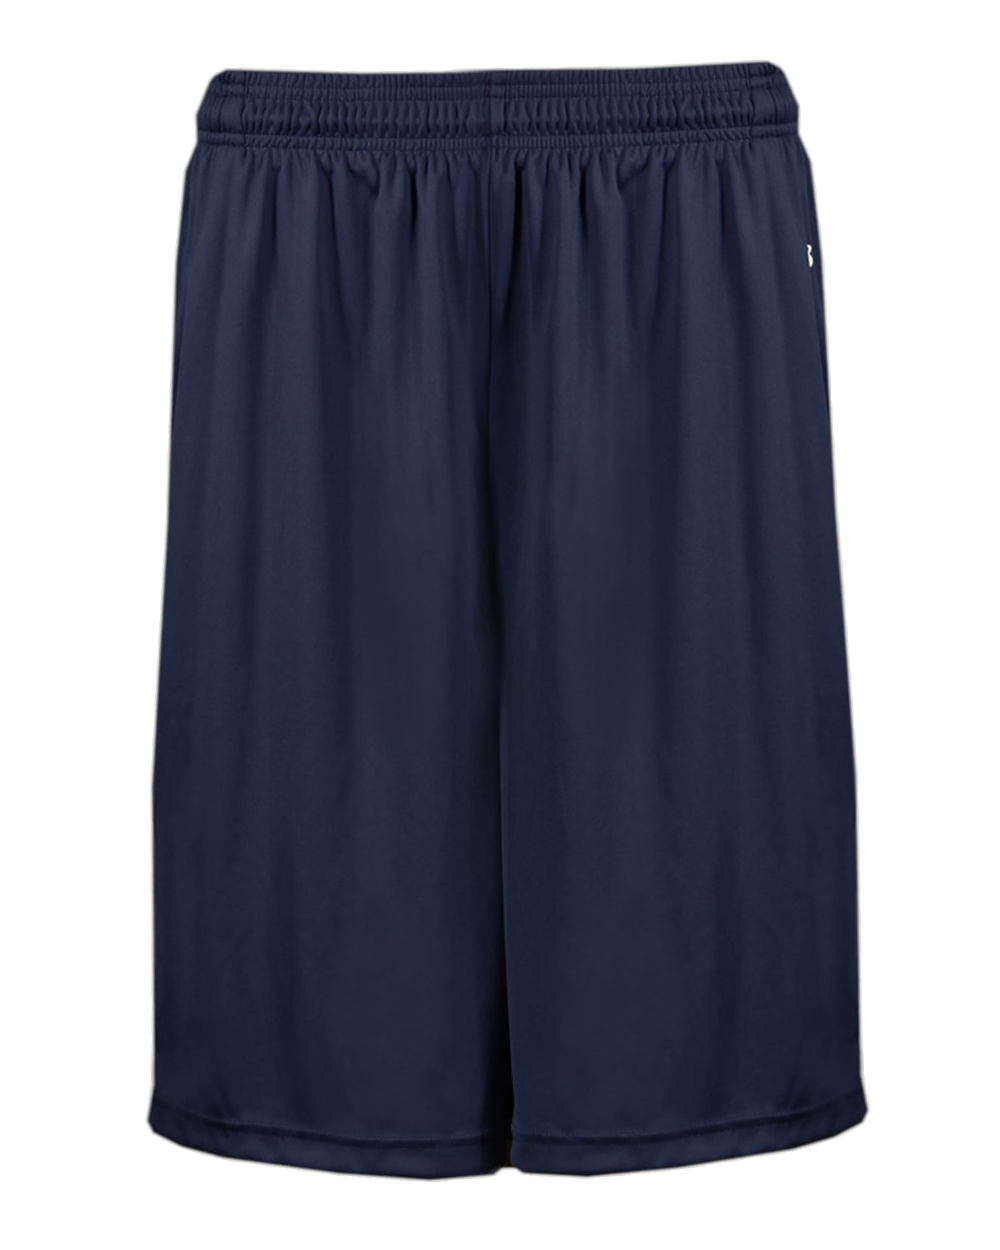 B-Core Pocketed 10 Inch Short - Navy